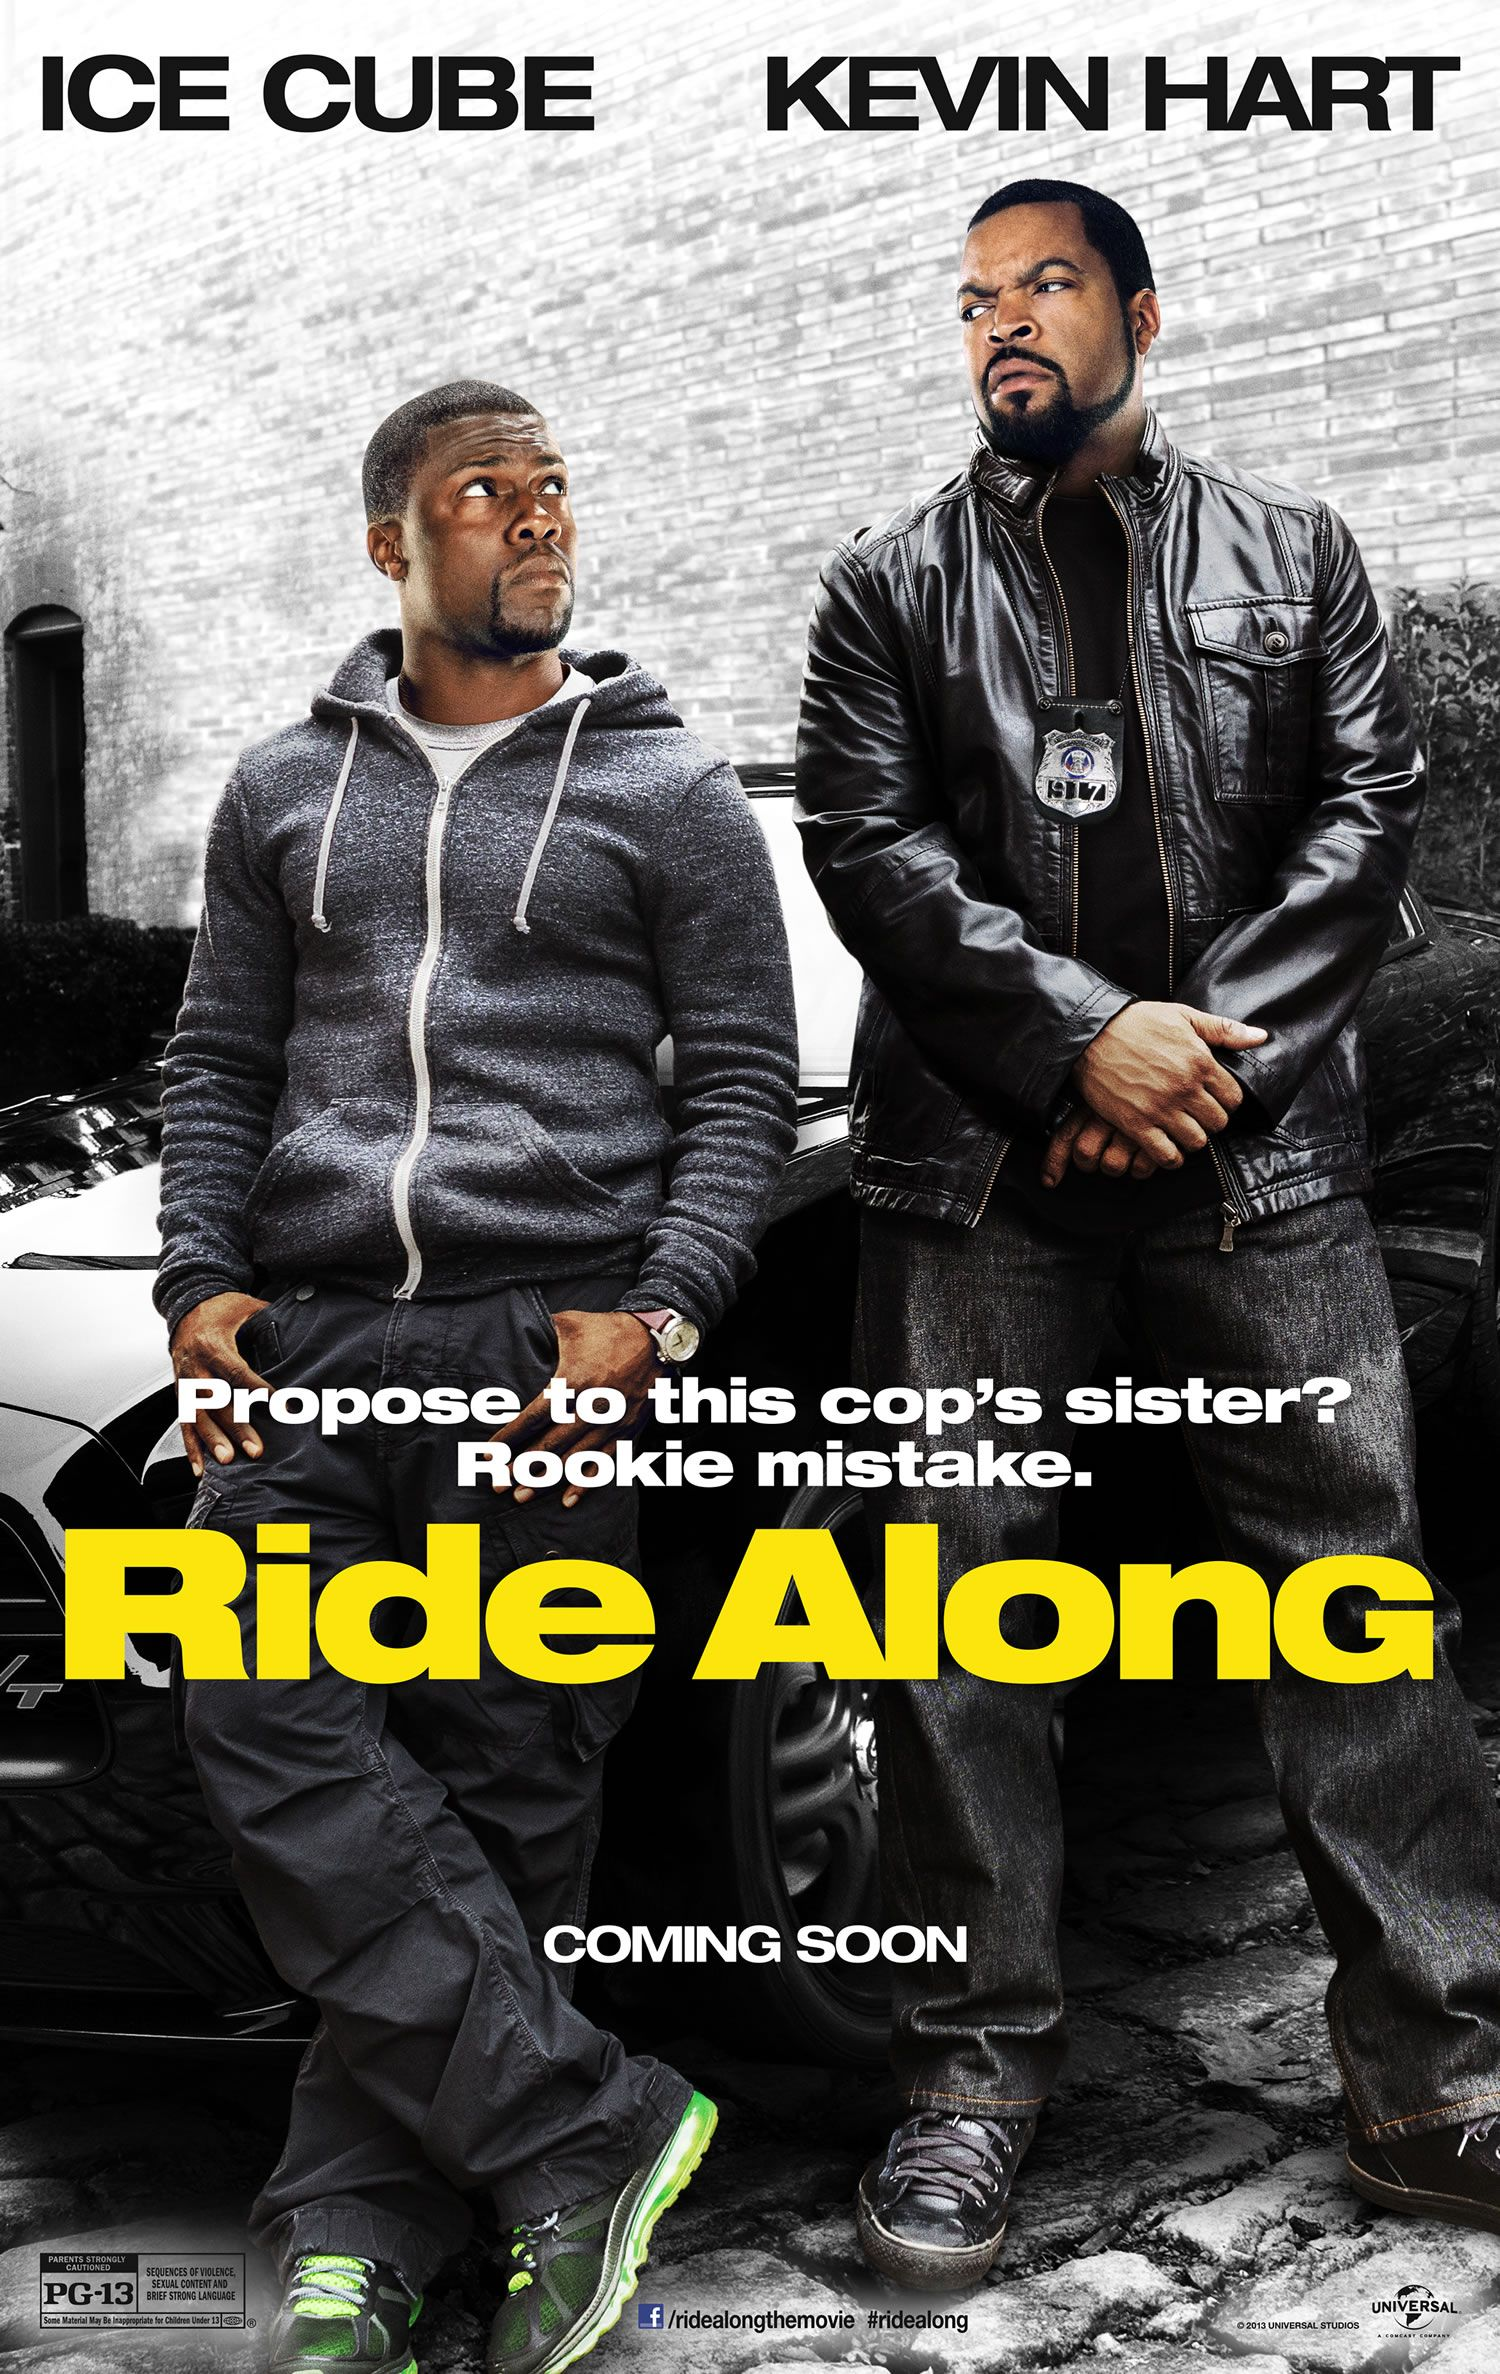 Ice Cube Song List Pretty ride along giveaway; ride along stars ice cube, kevin hart, and